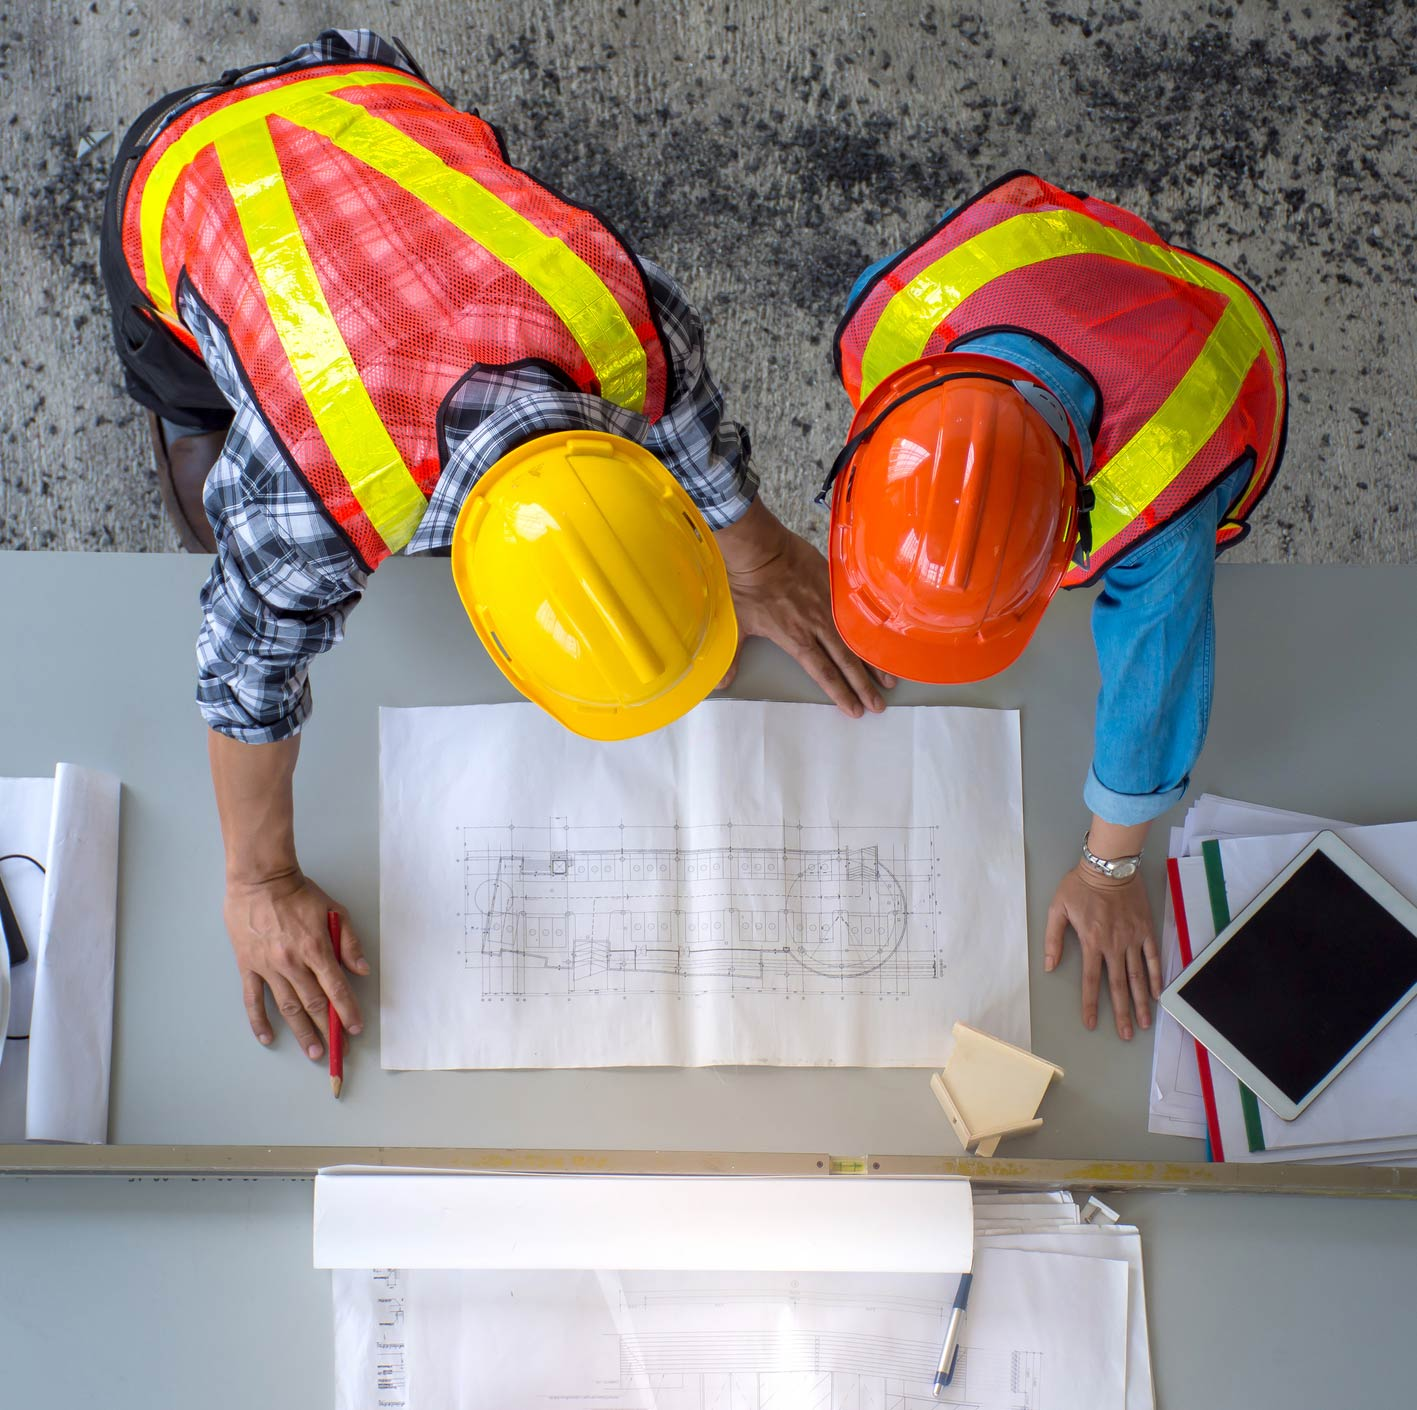 Construction safety. Two men with hard hats looking at blueprints.